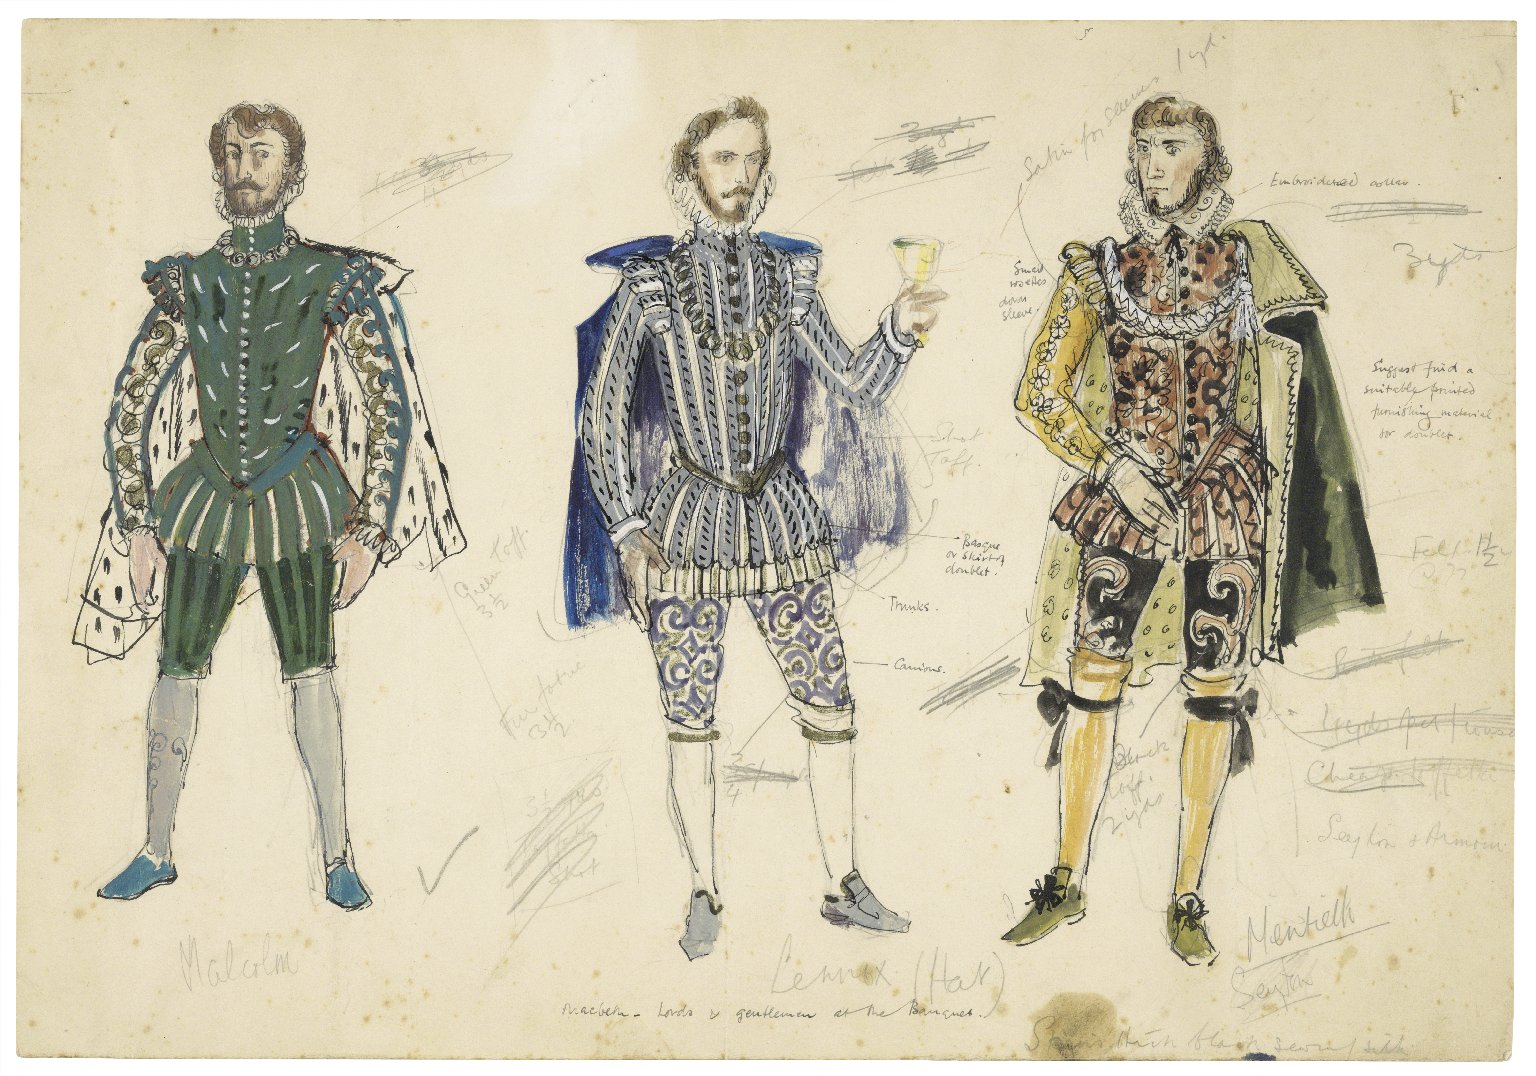 Sheet for 3 wardrobe sketches for noblemen's costumes